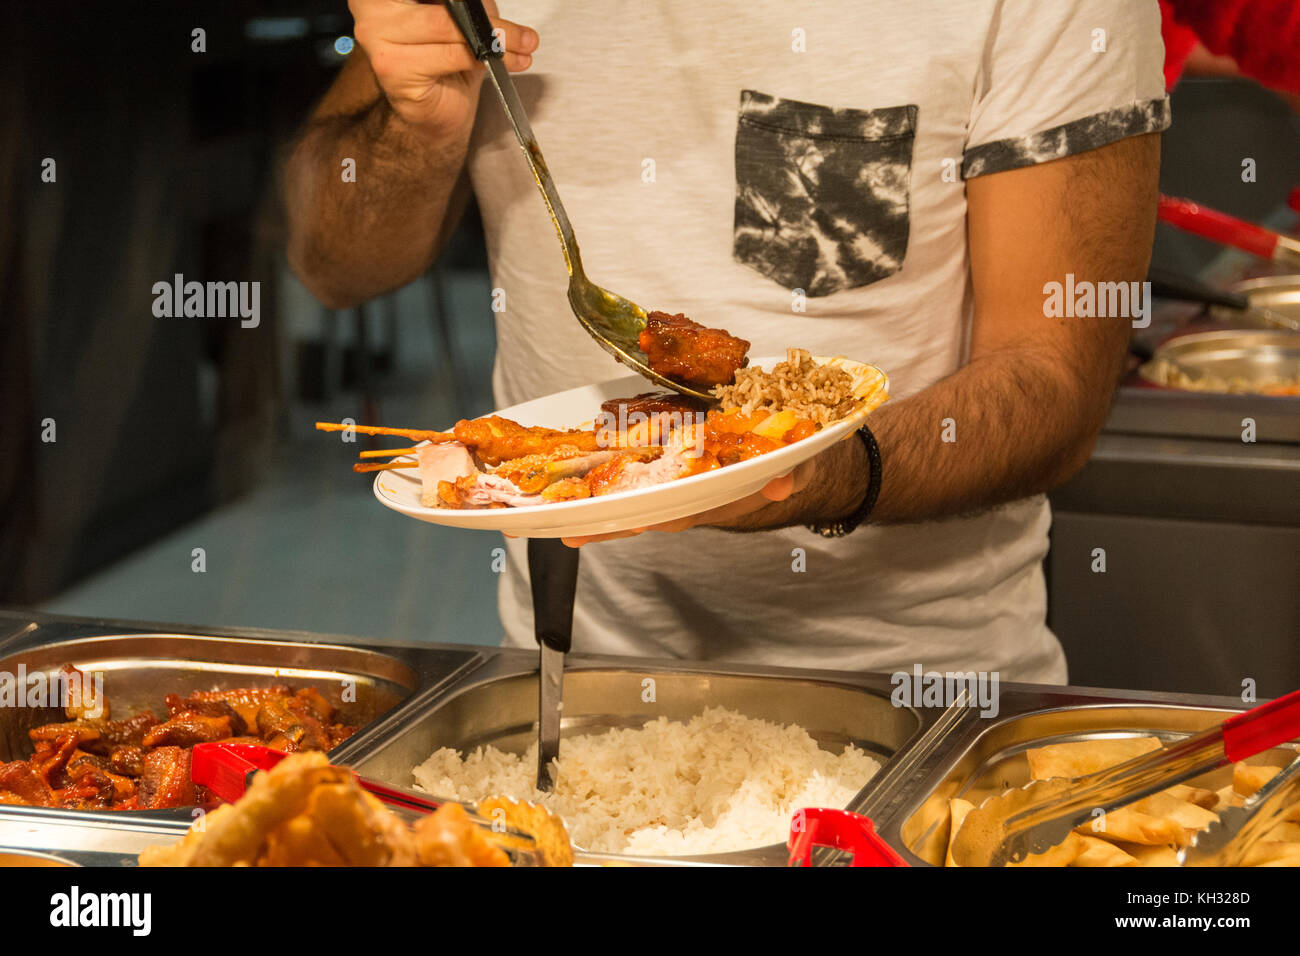 Customers helping themselves to food in a Chinese restaurant in China Town, London, England, UK. - Stock Image